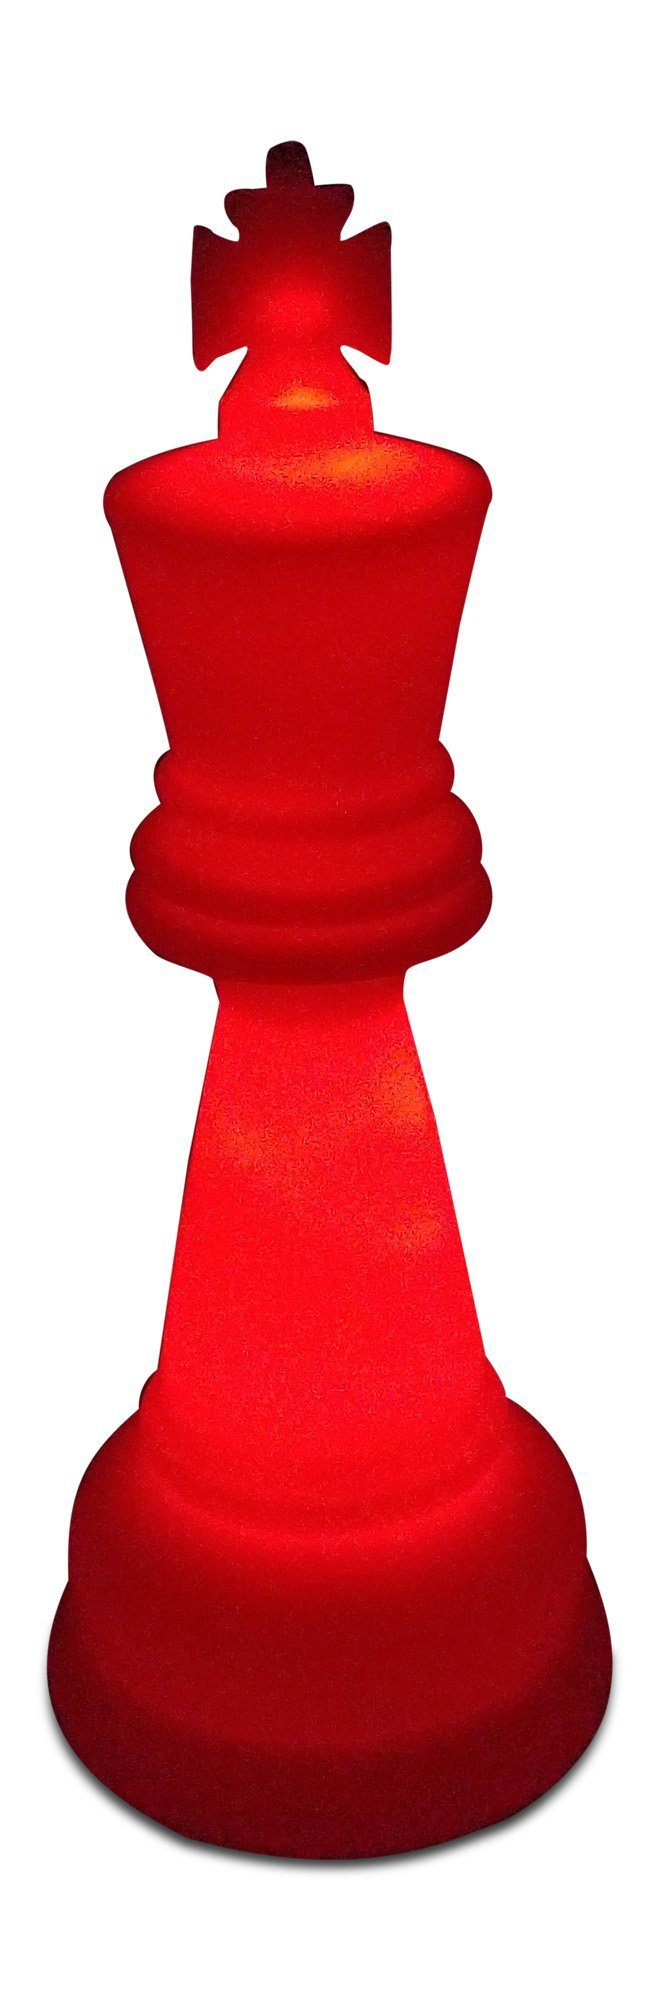 MegaChess 26 Inch Premium Plastic King Light-Up Giant Chess Piece - Red |  | MegaChess.com